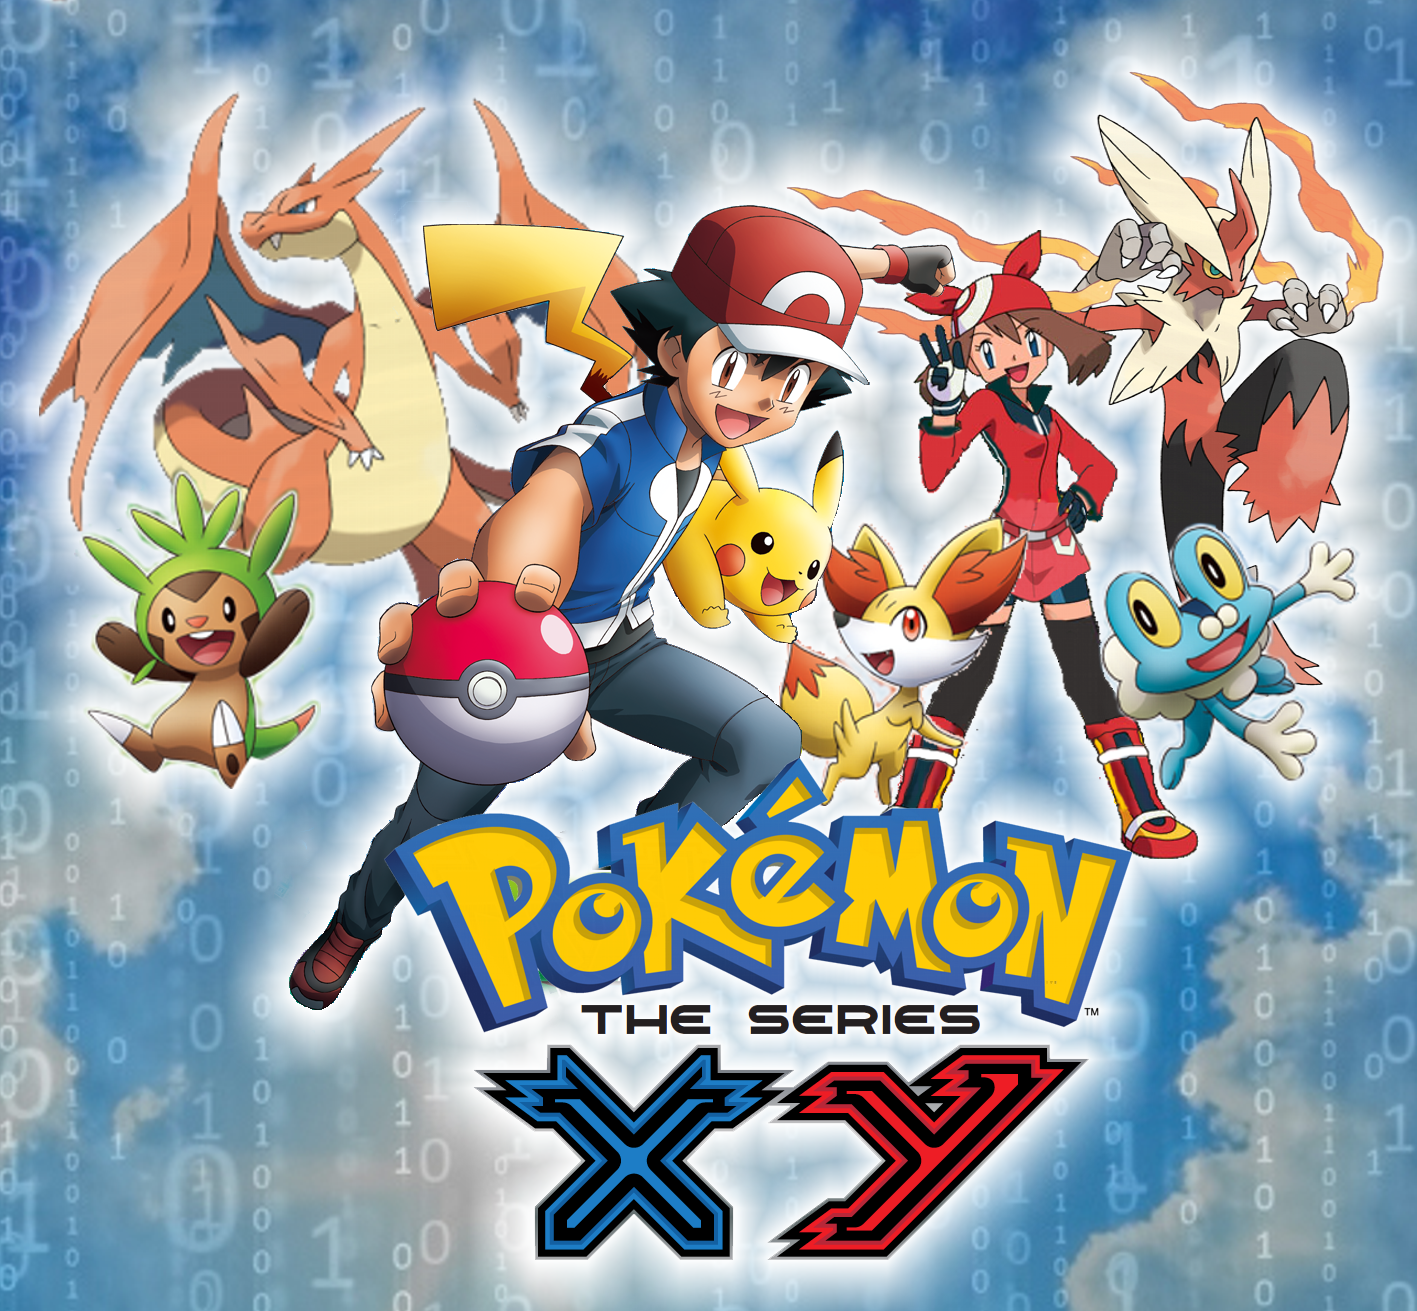 Pokemon Xy Images Pkmxy1 Hd Wallpaper And Background Photos 38501954